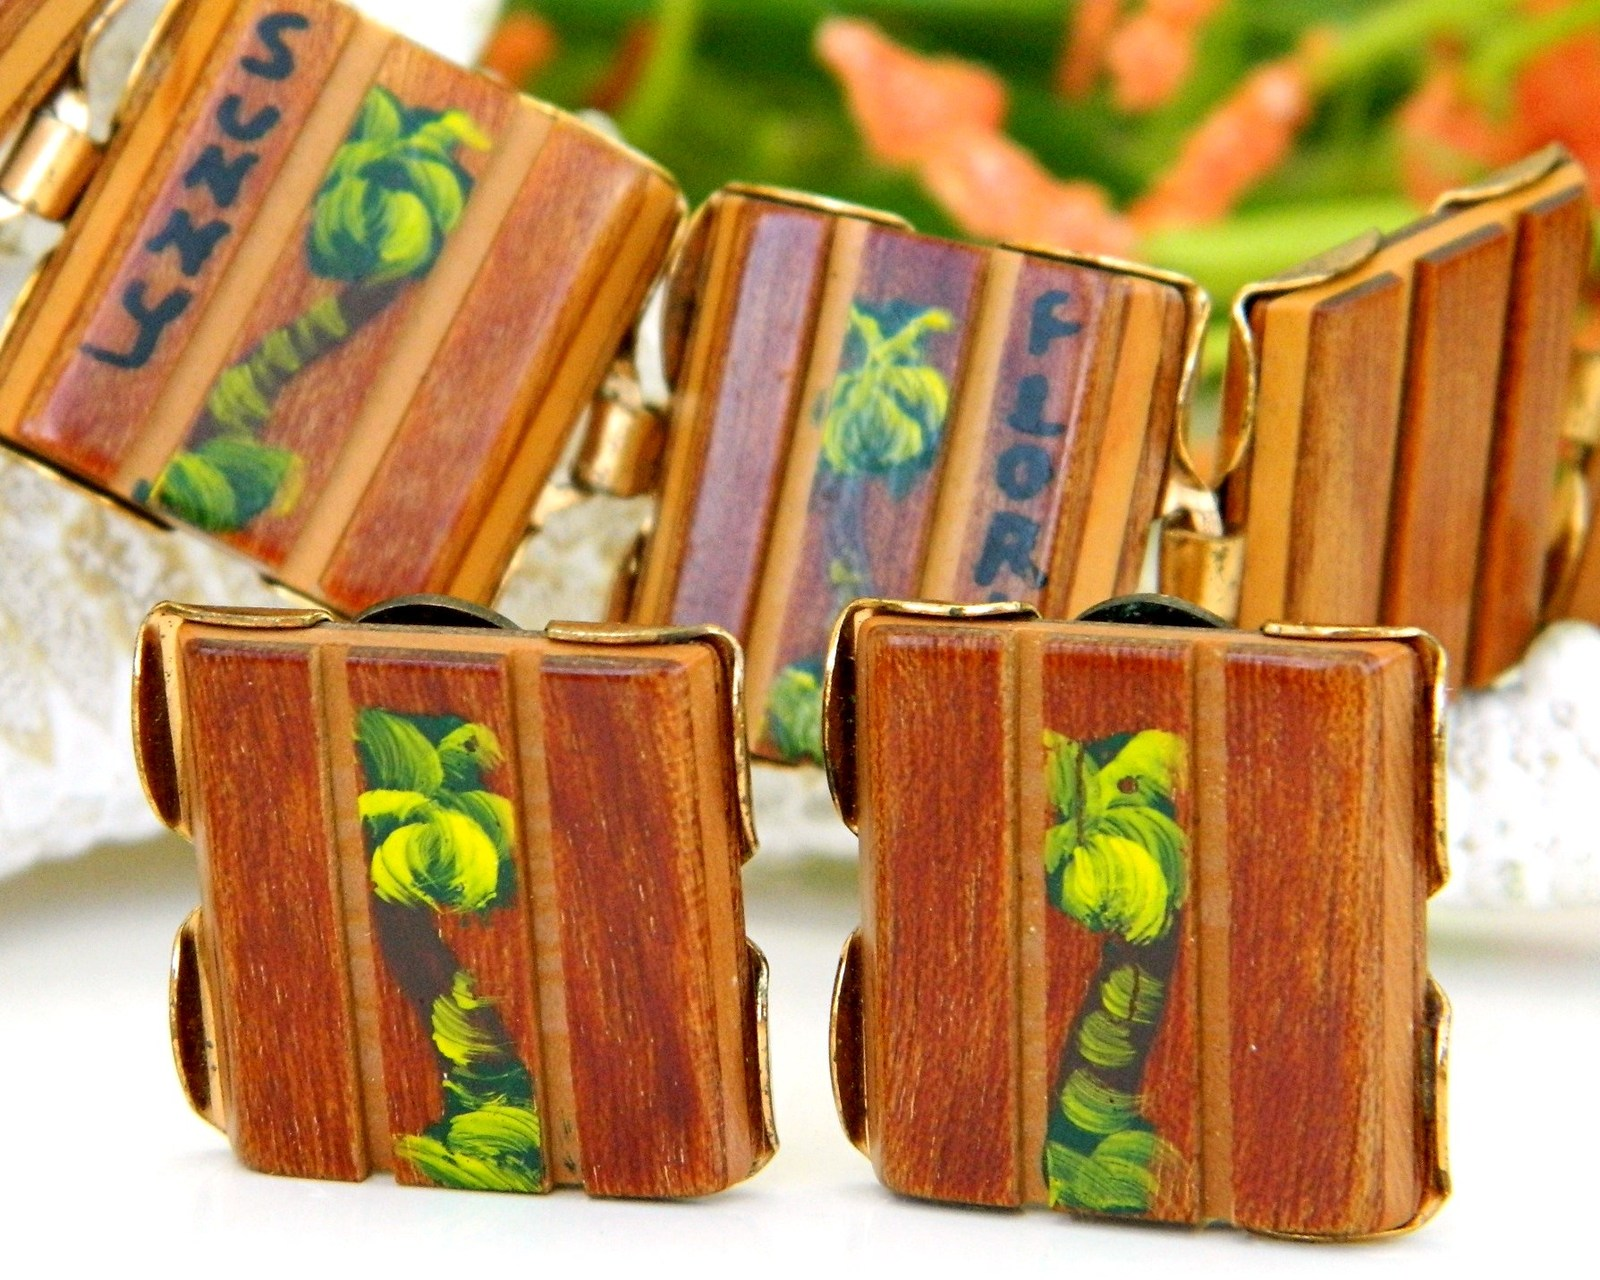 Vintage Wood Bracelet Earrings Set Florida Souvenir Palm Trees Painted - $24.95